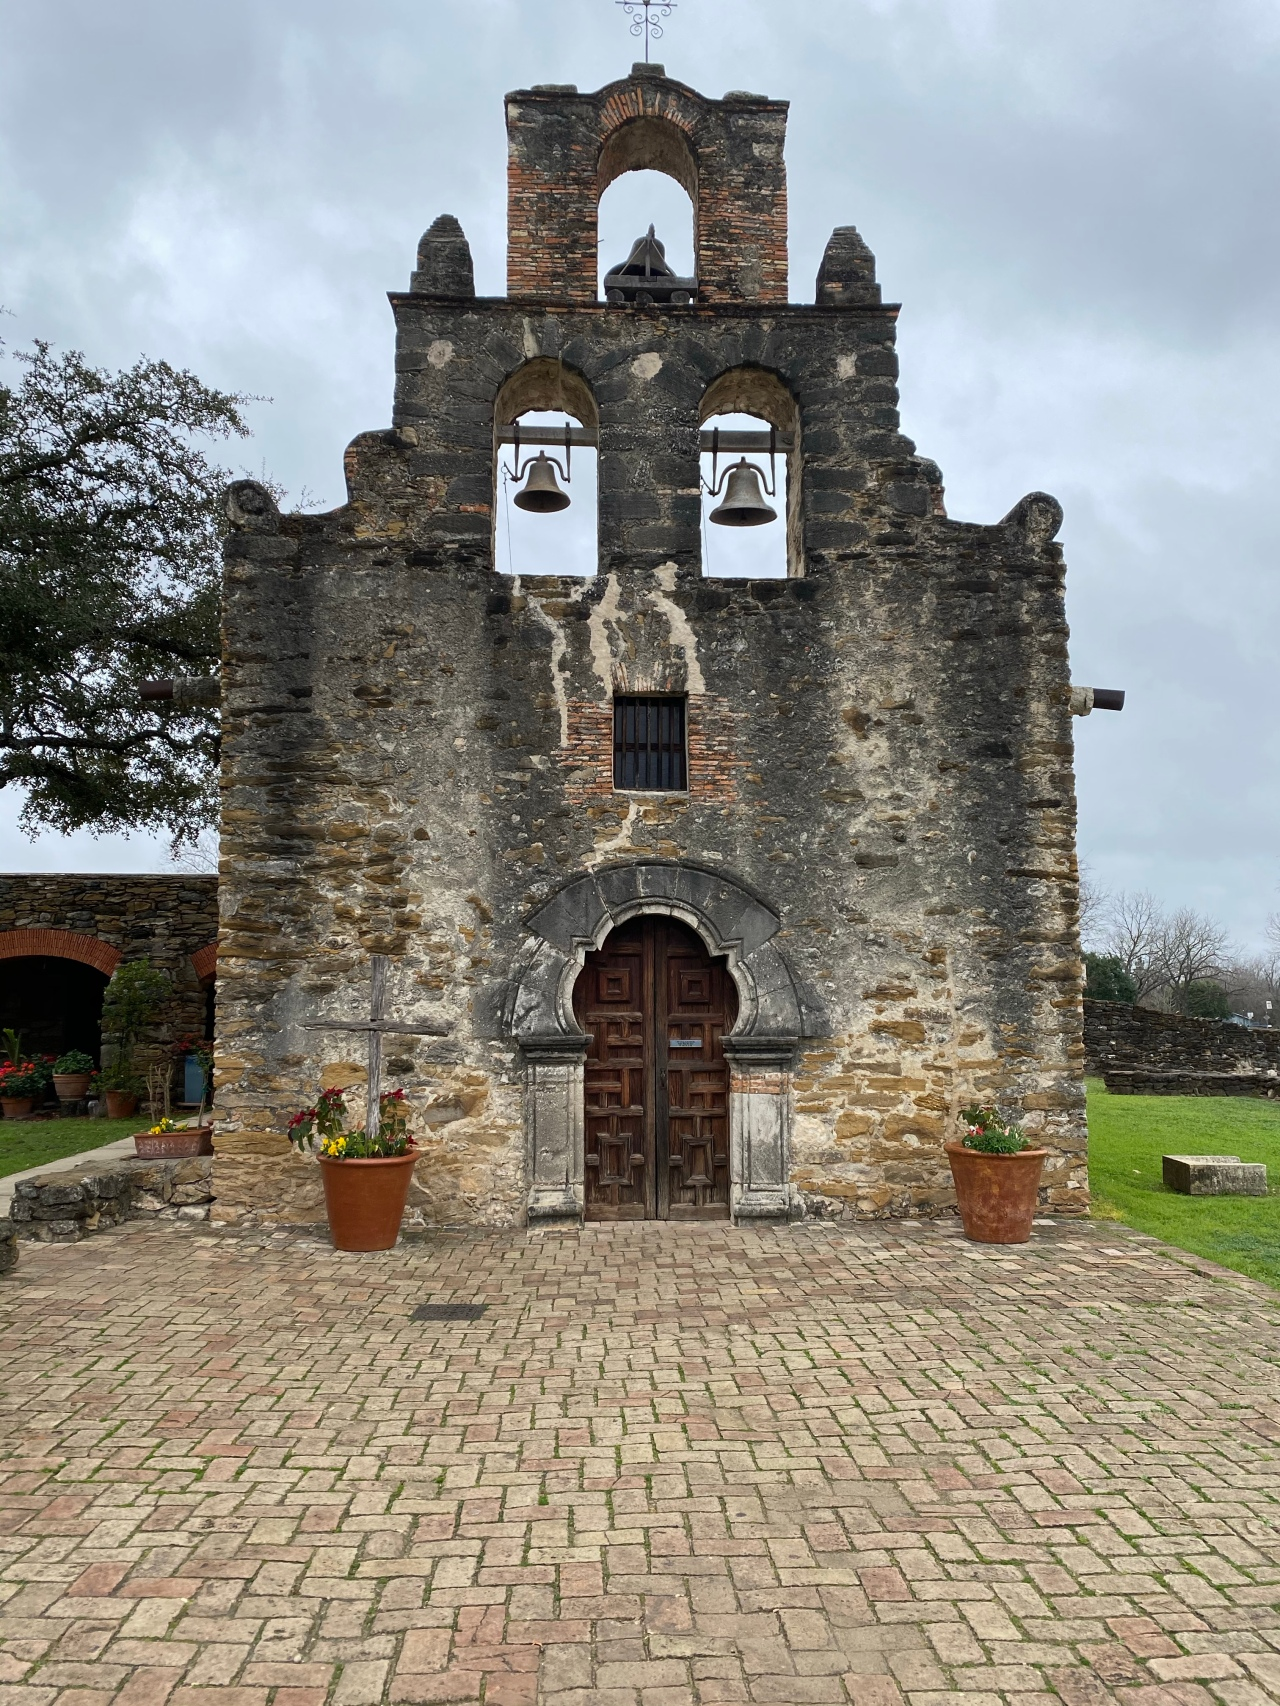 The Missions of San Antonio – Texas